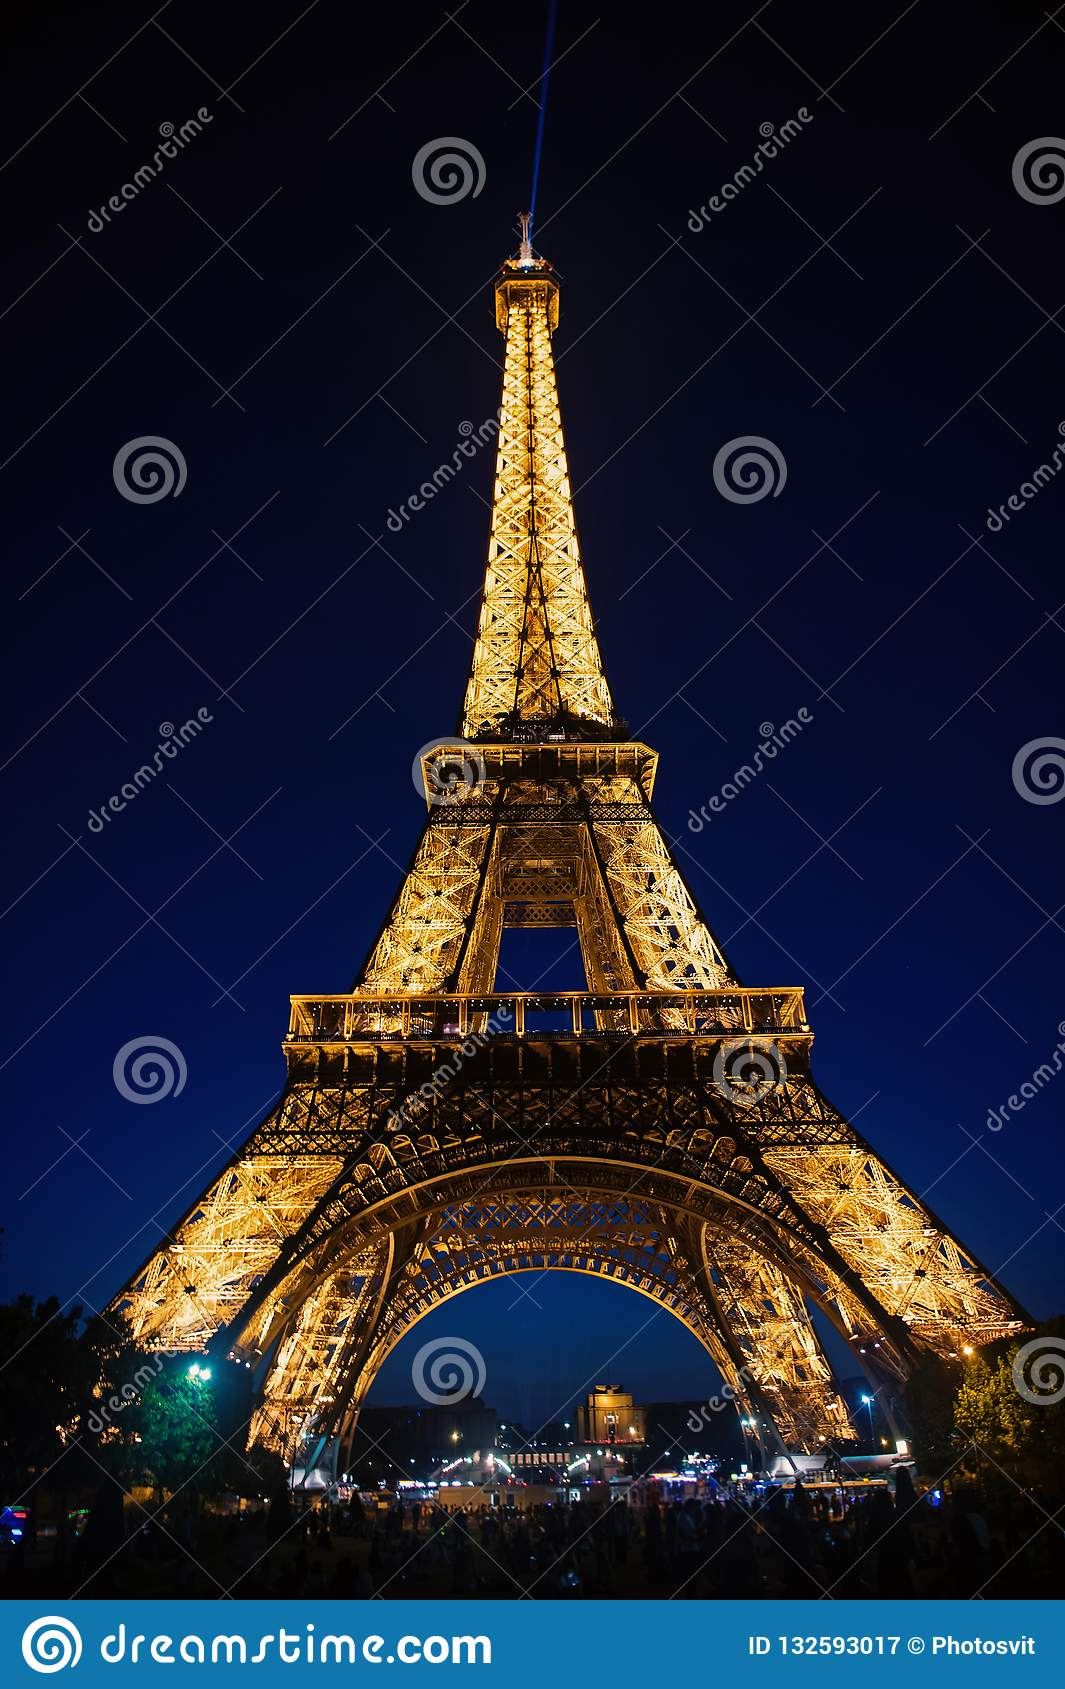 Eiffel Tower At Sunset In Paris France Romantic Travel